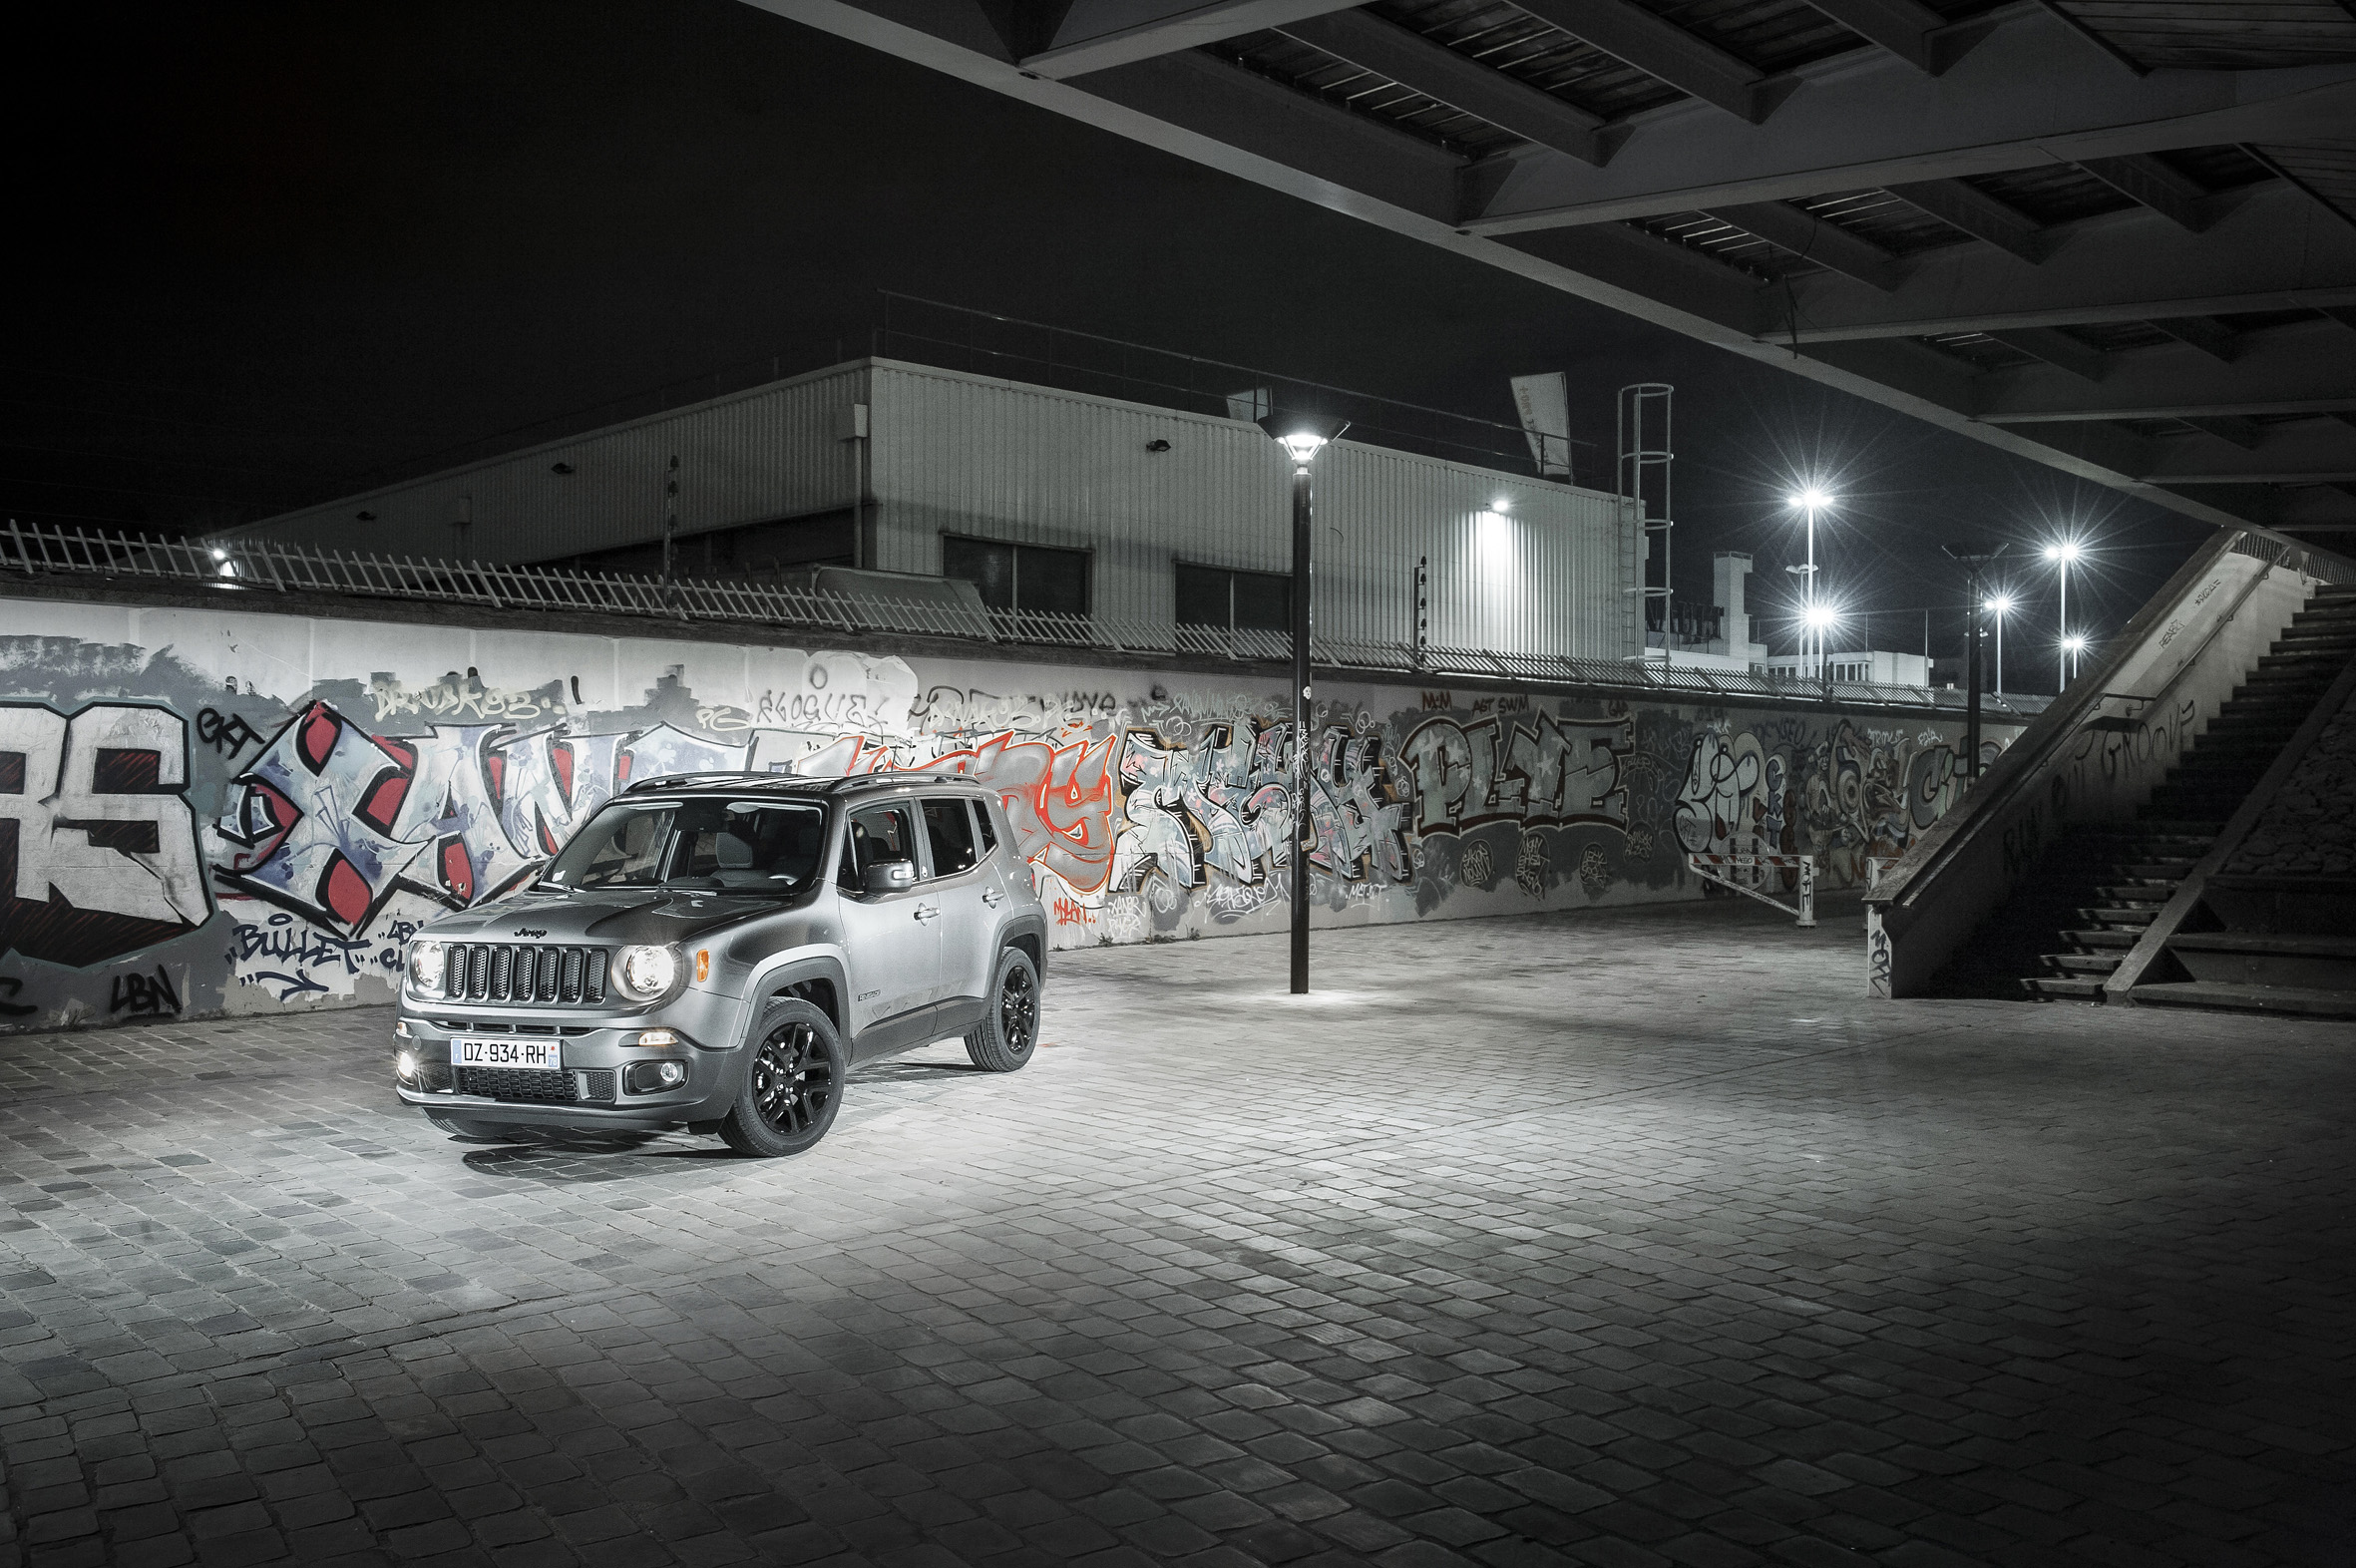 jeep renegade brooklyn edition l esprit new yorkais une fille au volant. Black Bedroom Furniture Sets. Home Design Ideas